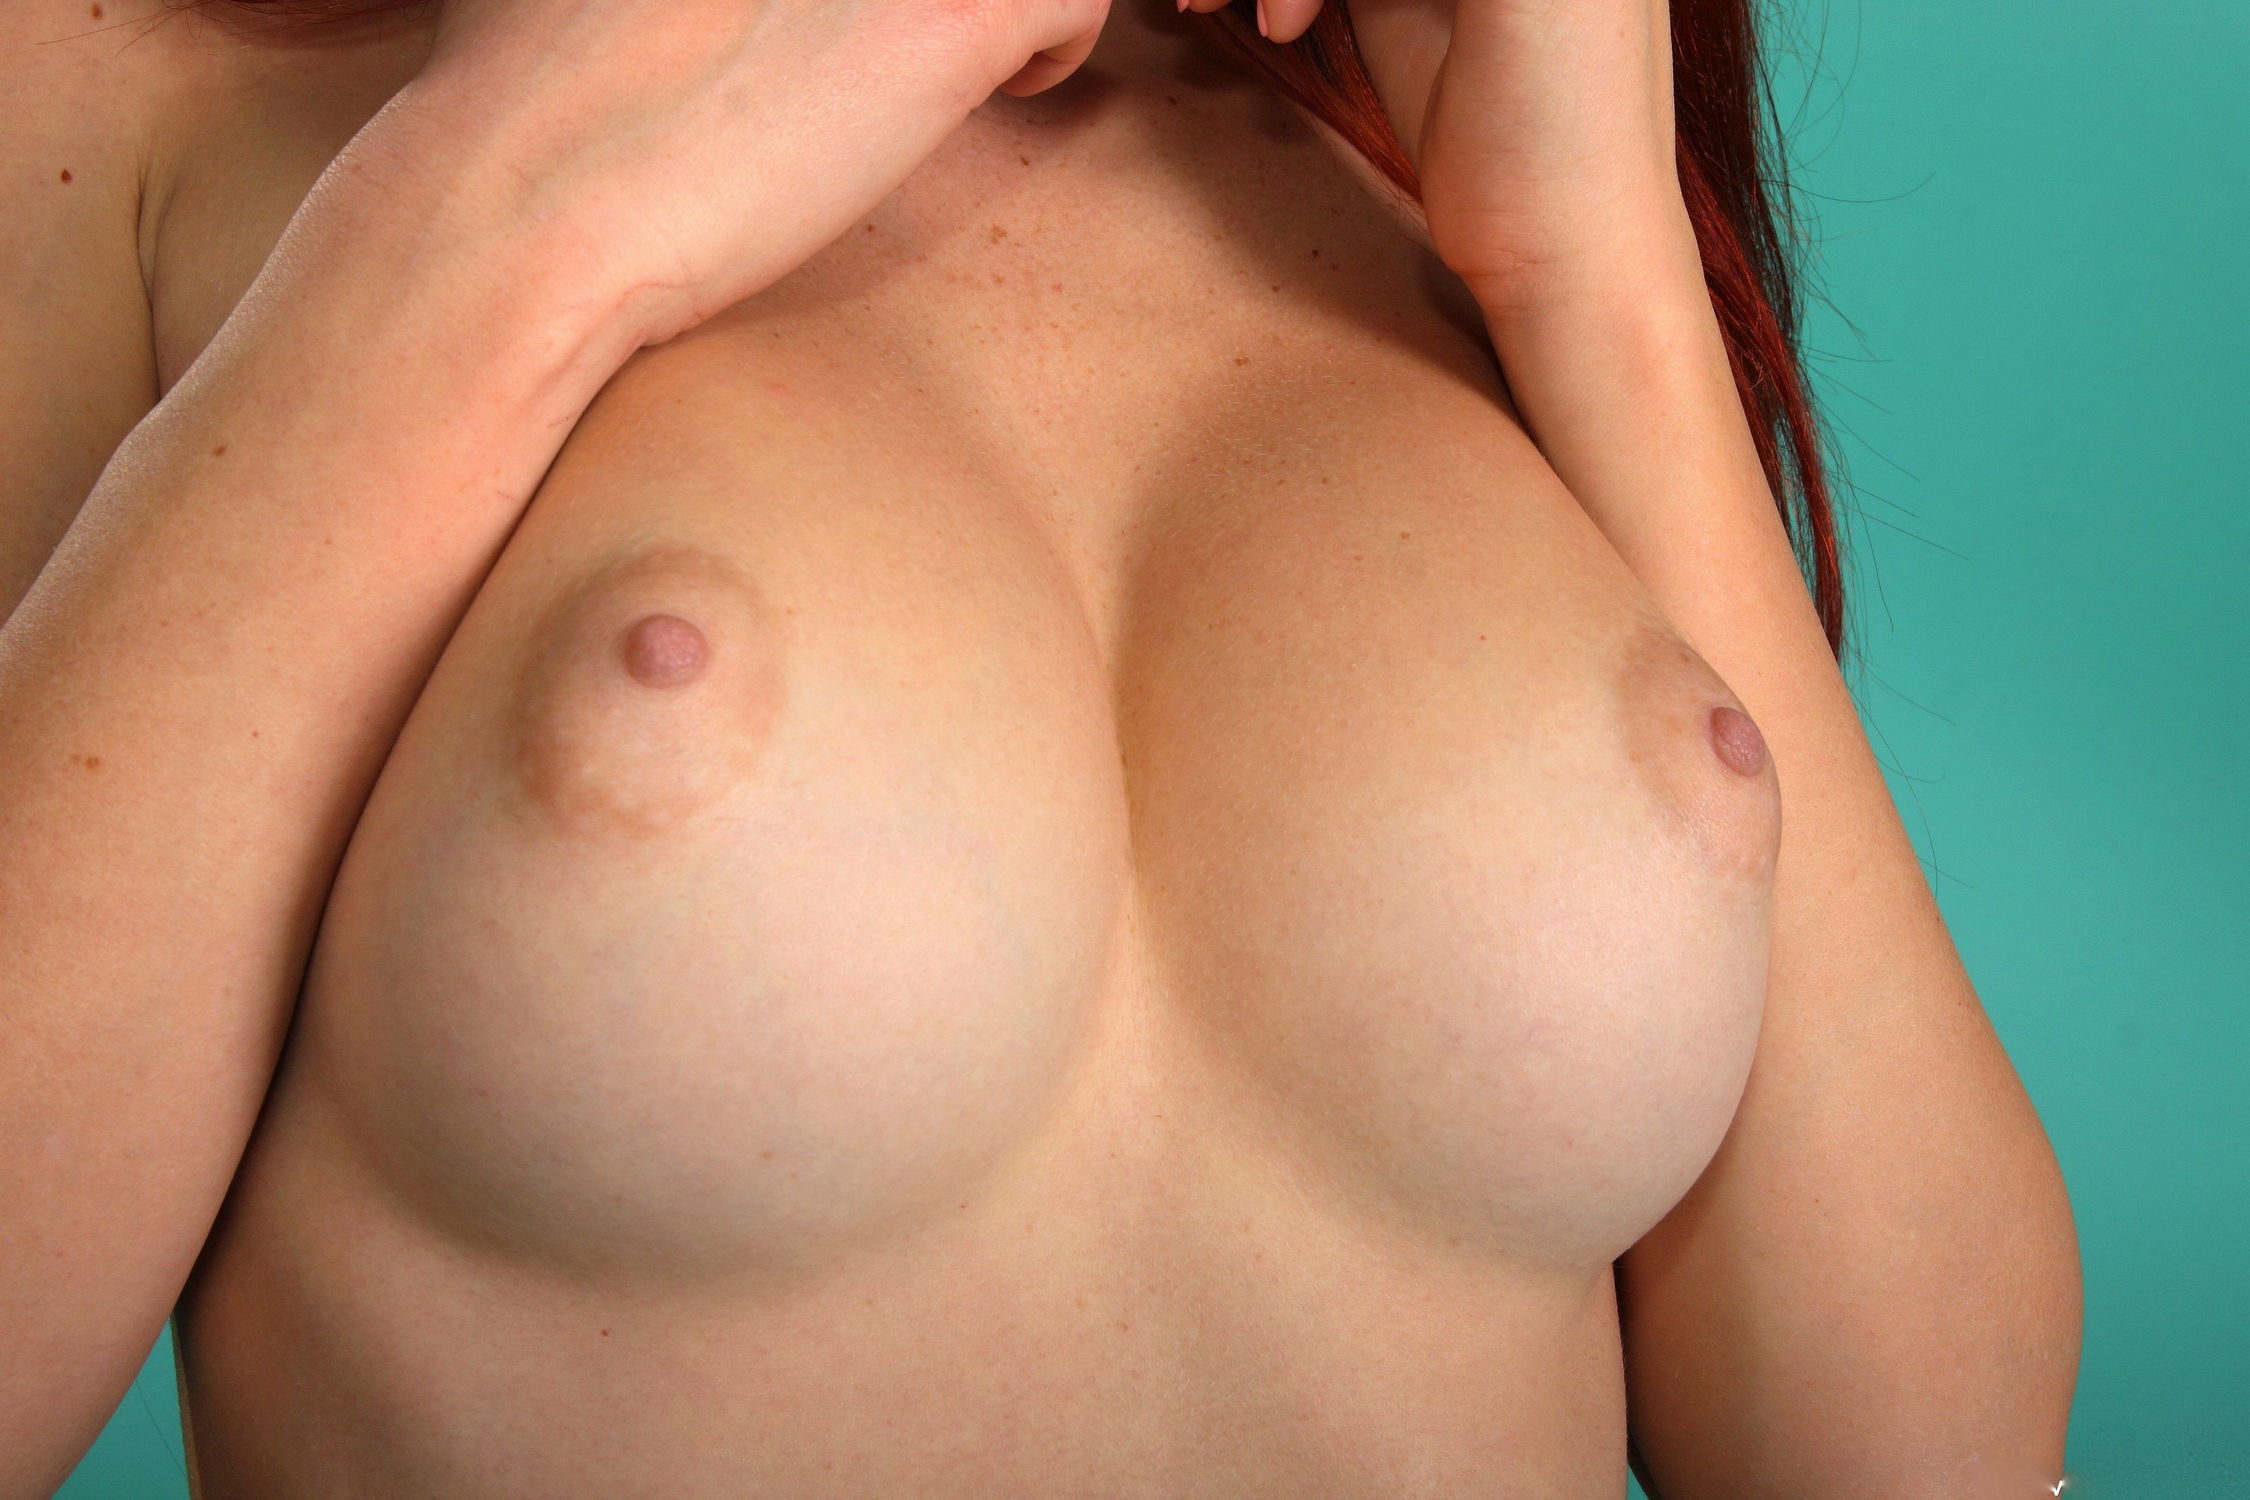 boobs-nude-mix-vol6-72